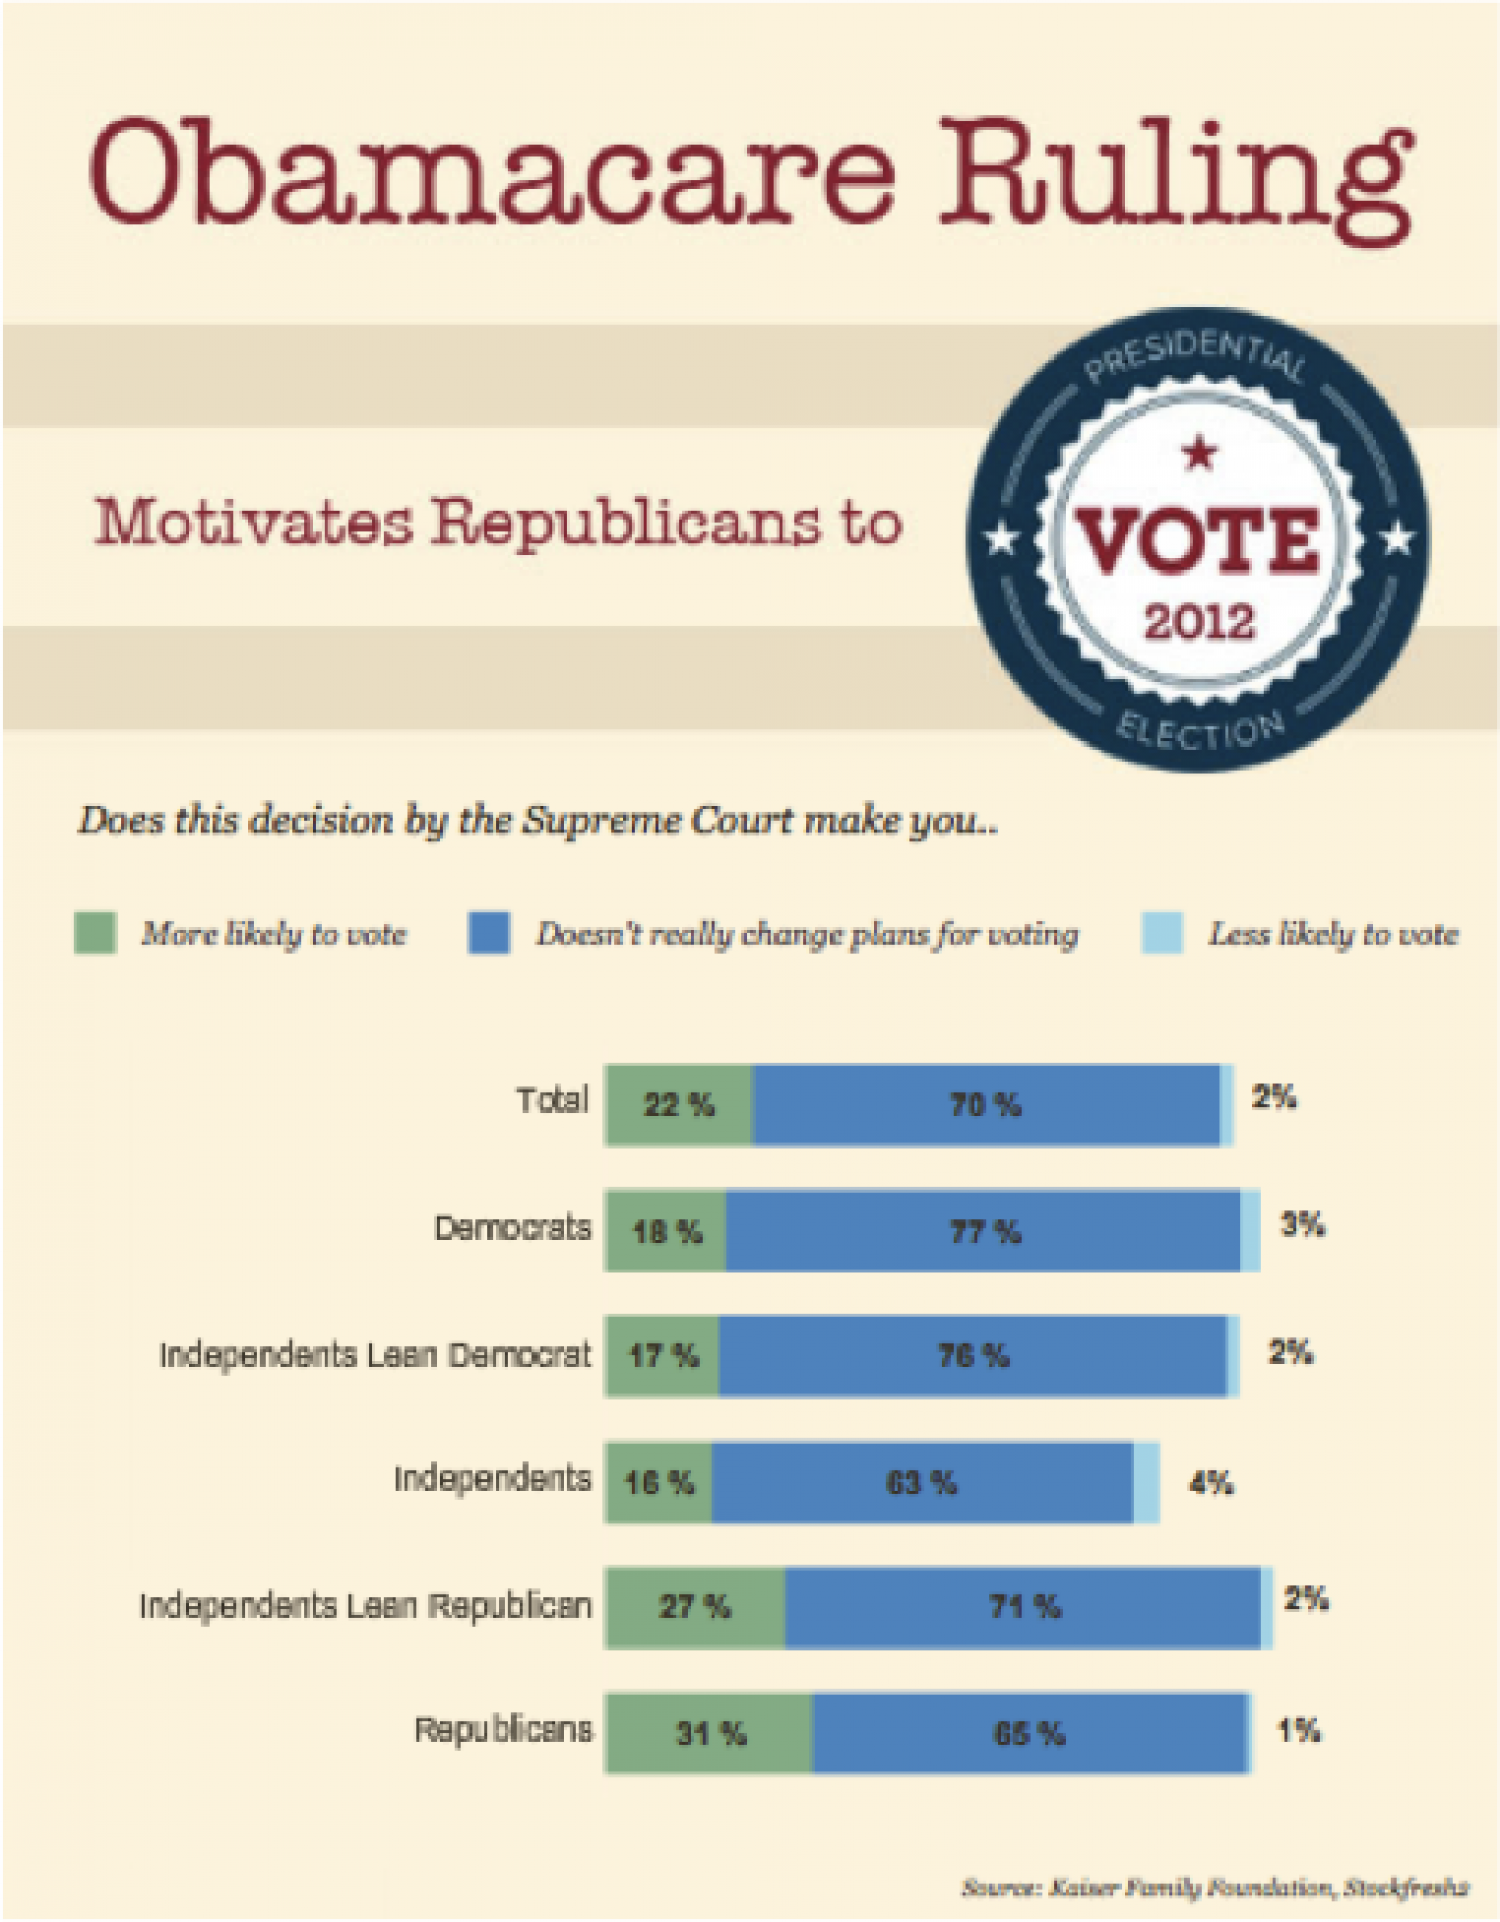 The Obamacare Ruling Infographic